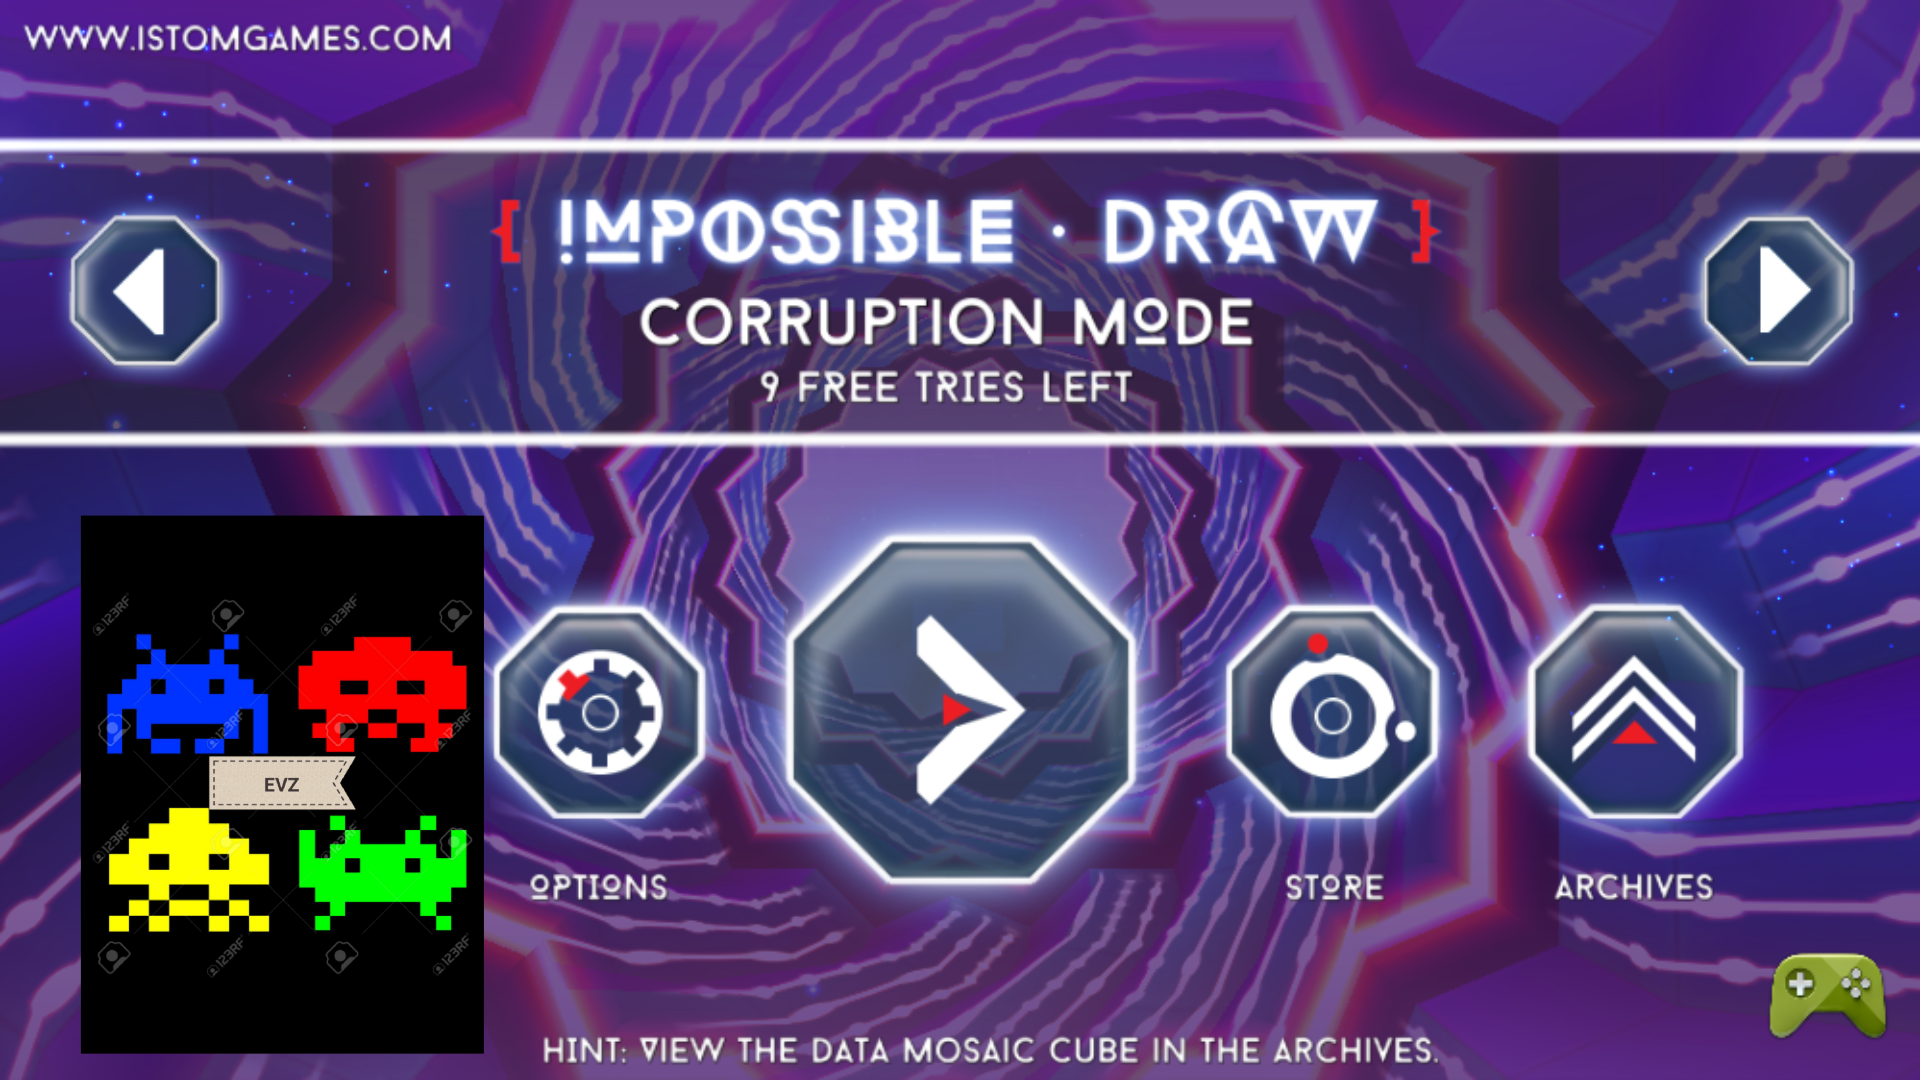 Impossible Draw [Corruption] 17,400 points